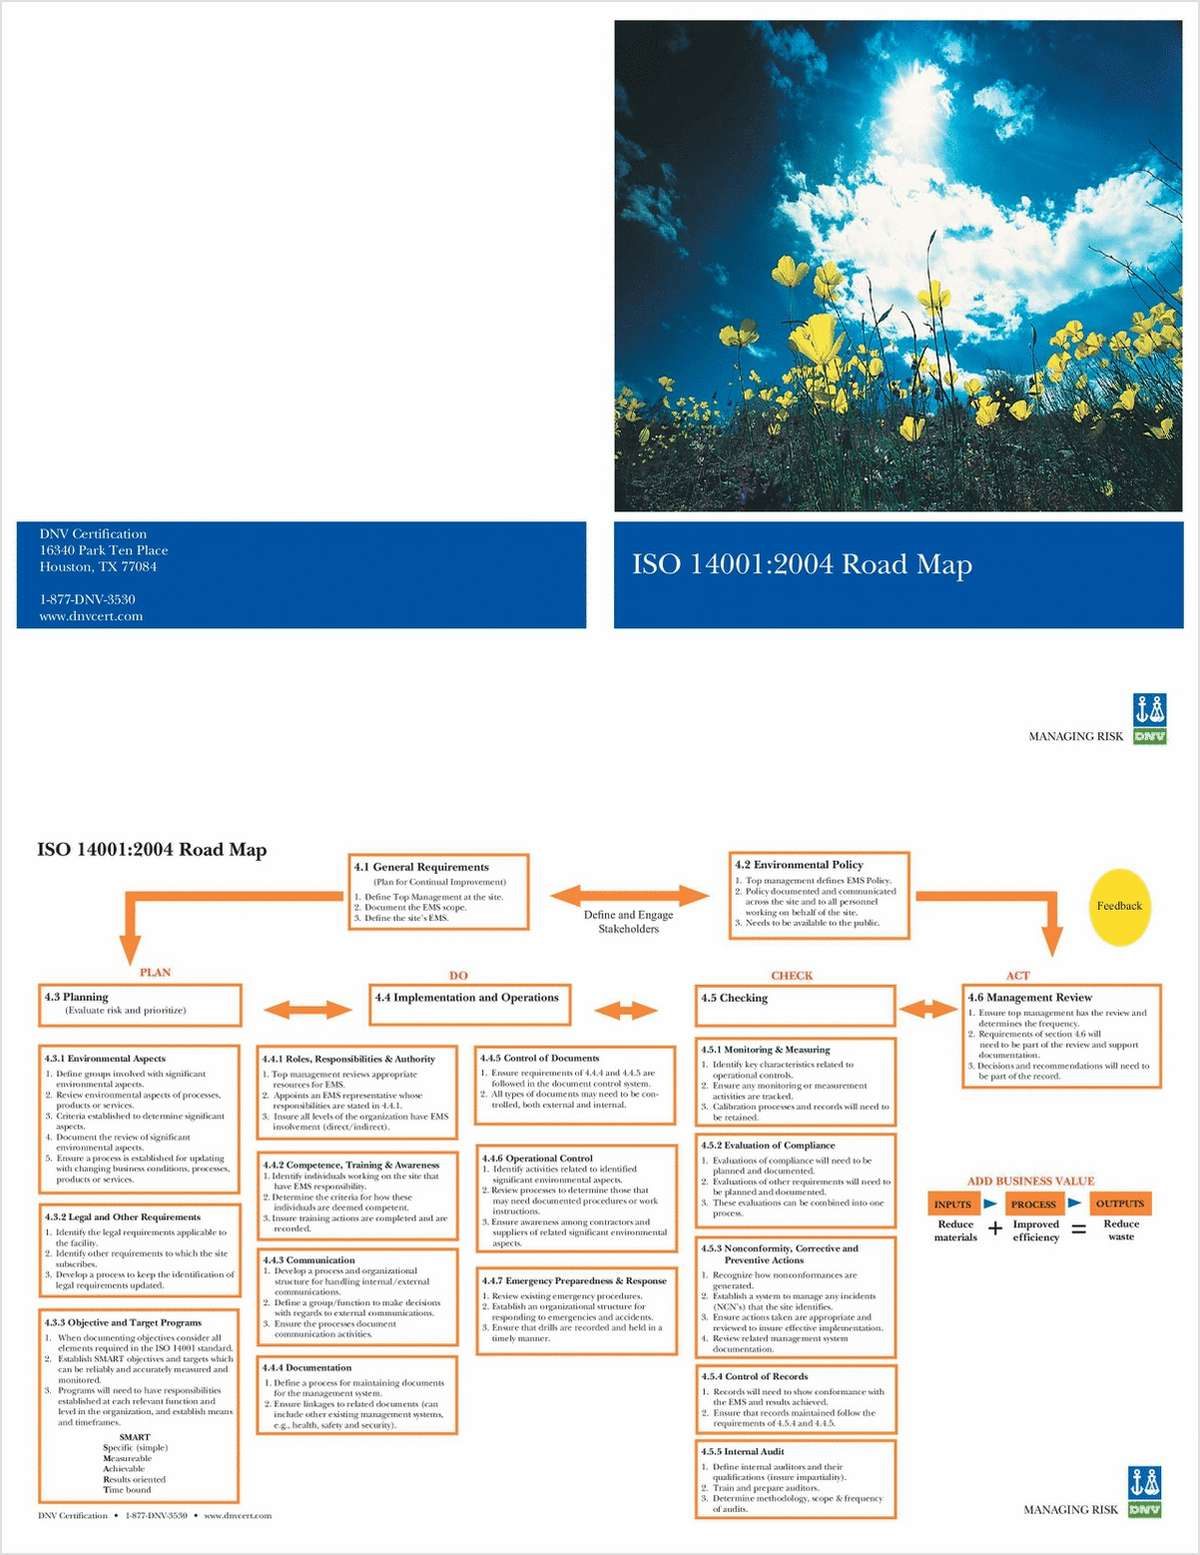 ISO 14001:2004 Road Map